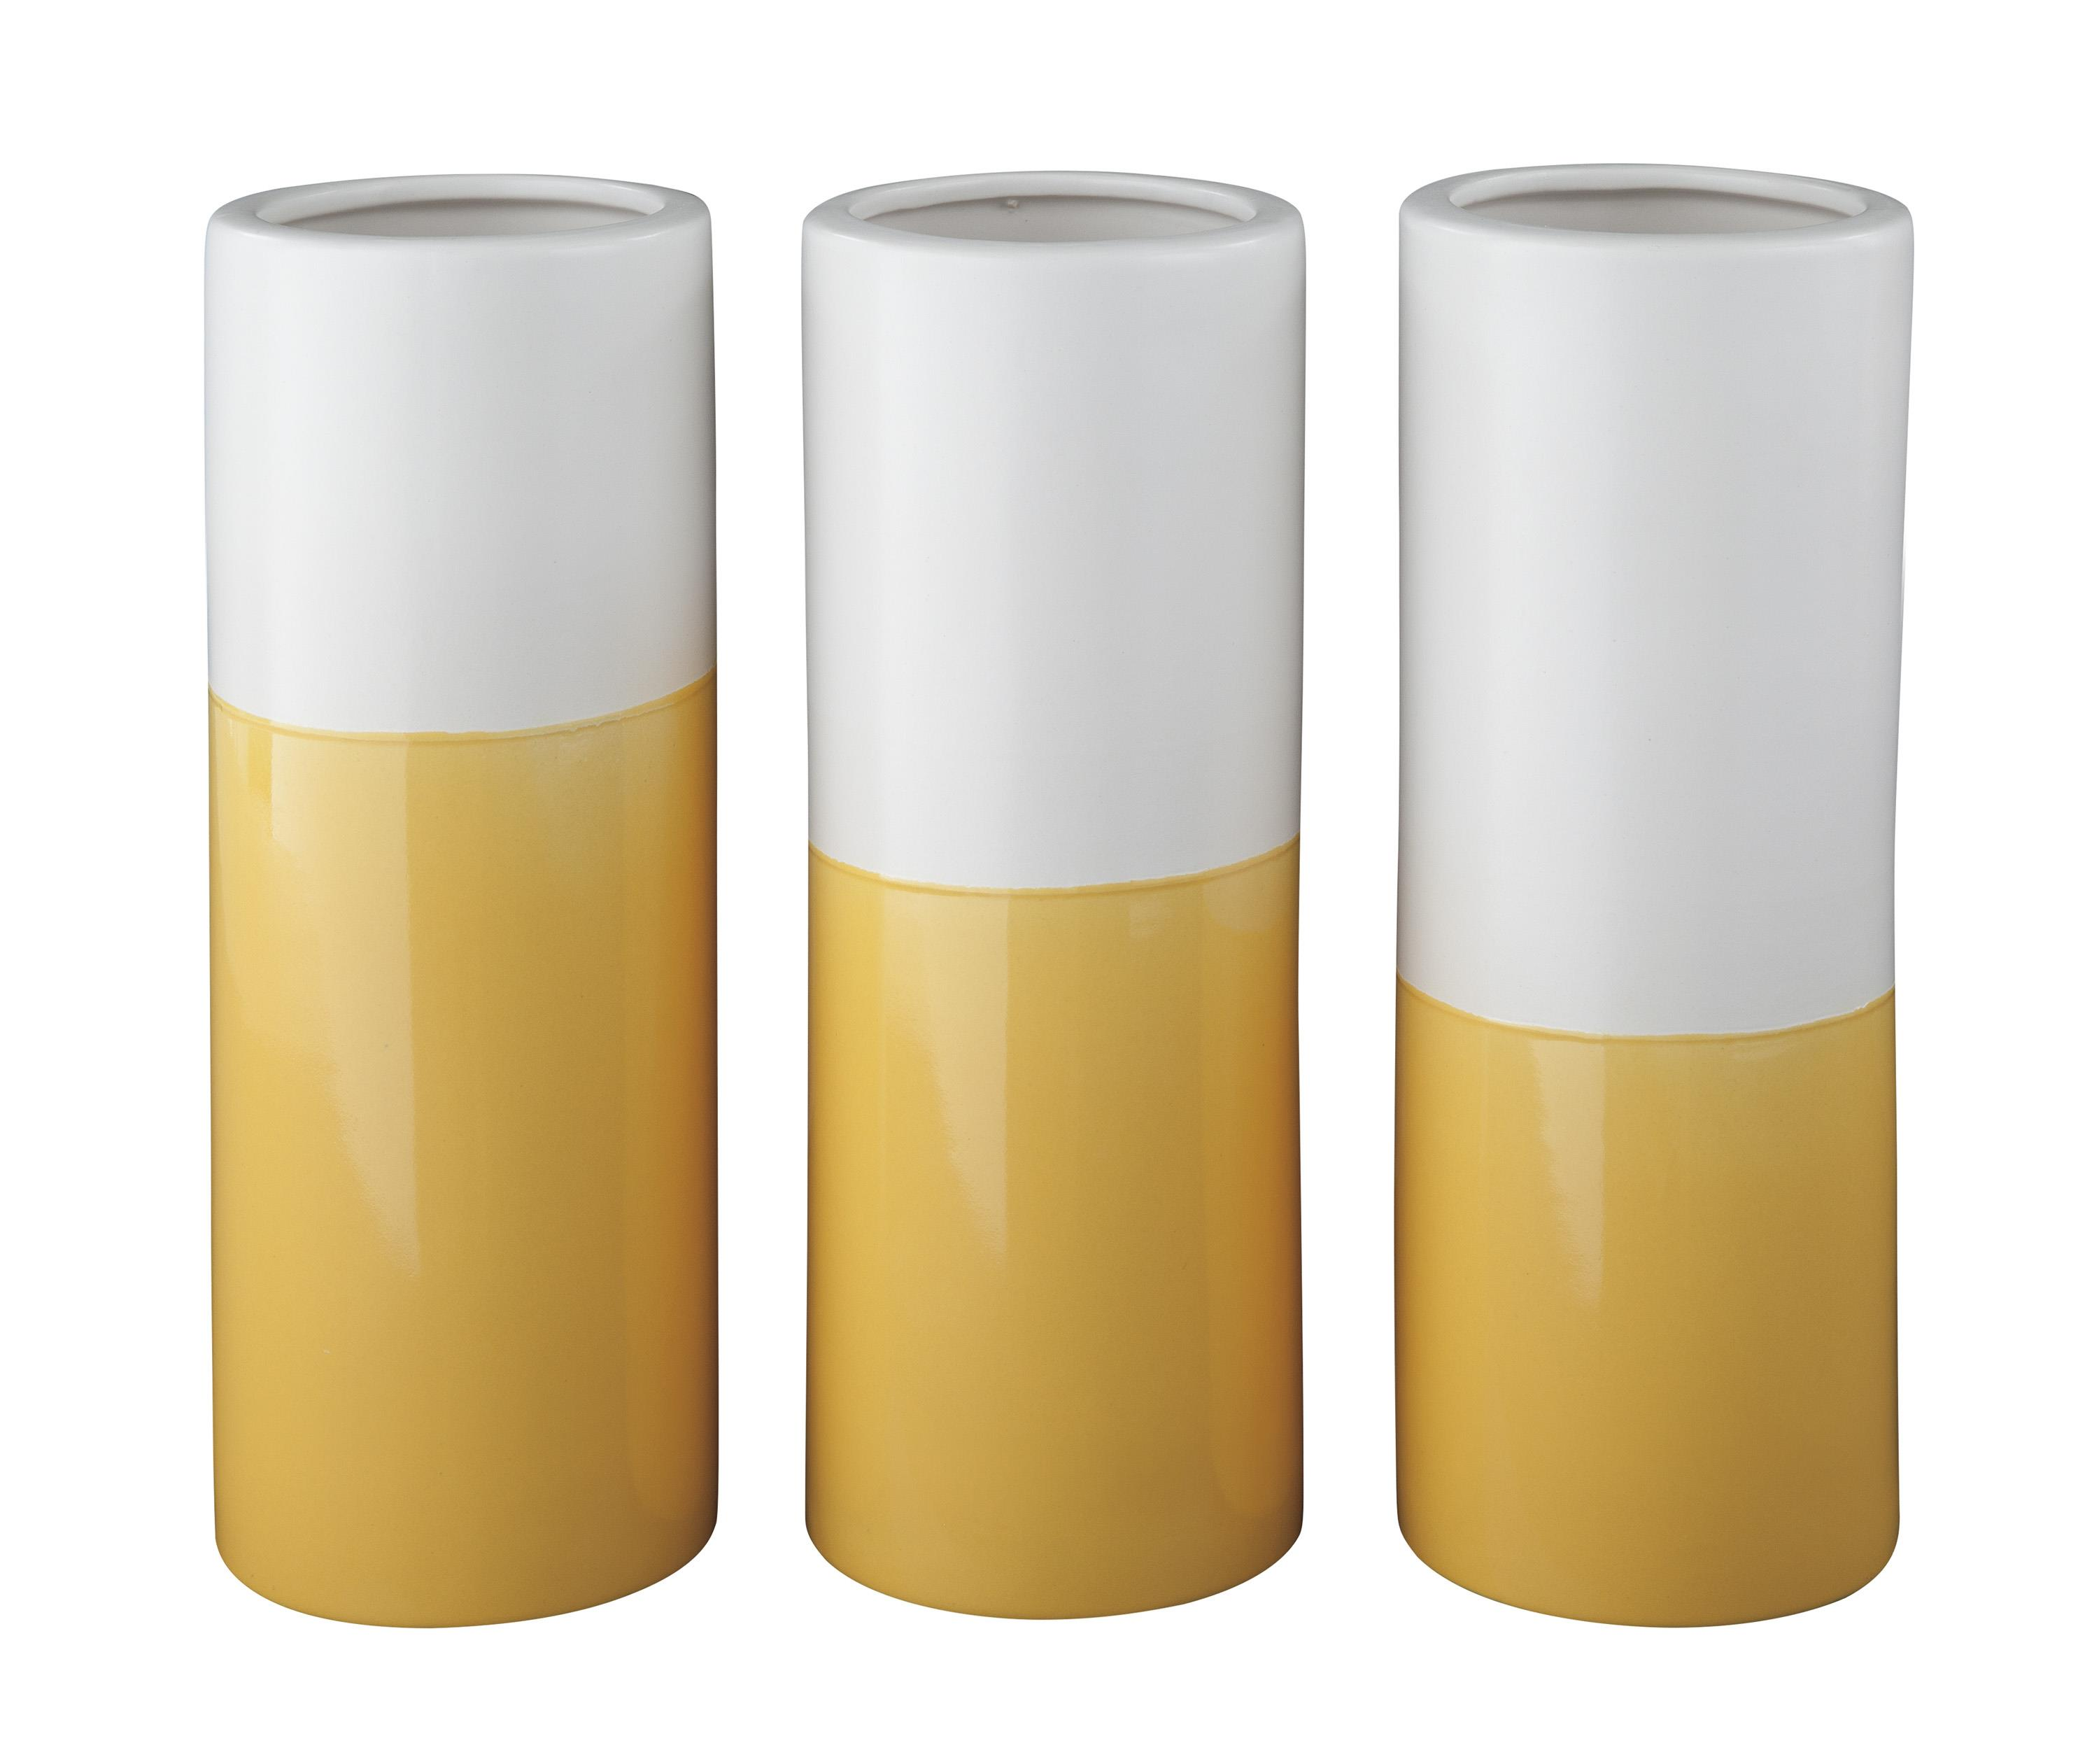 Signature Design by Ashley Accents Dalal Yellow/White Vases (Set of 3) - Item Number: A2000167V